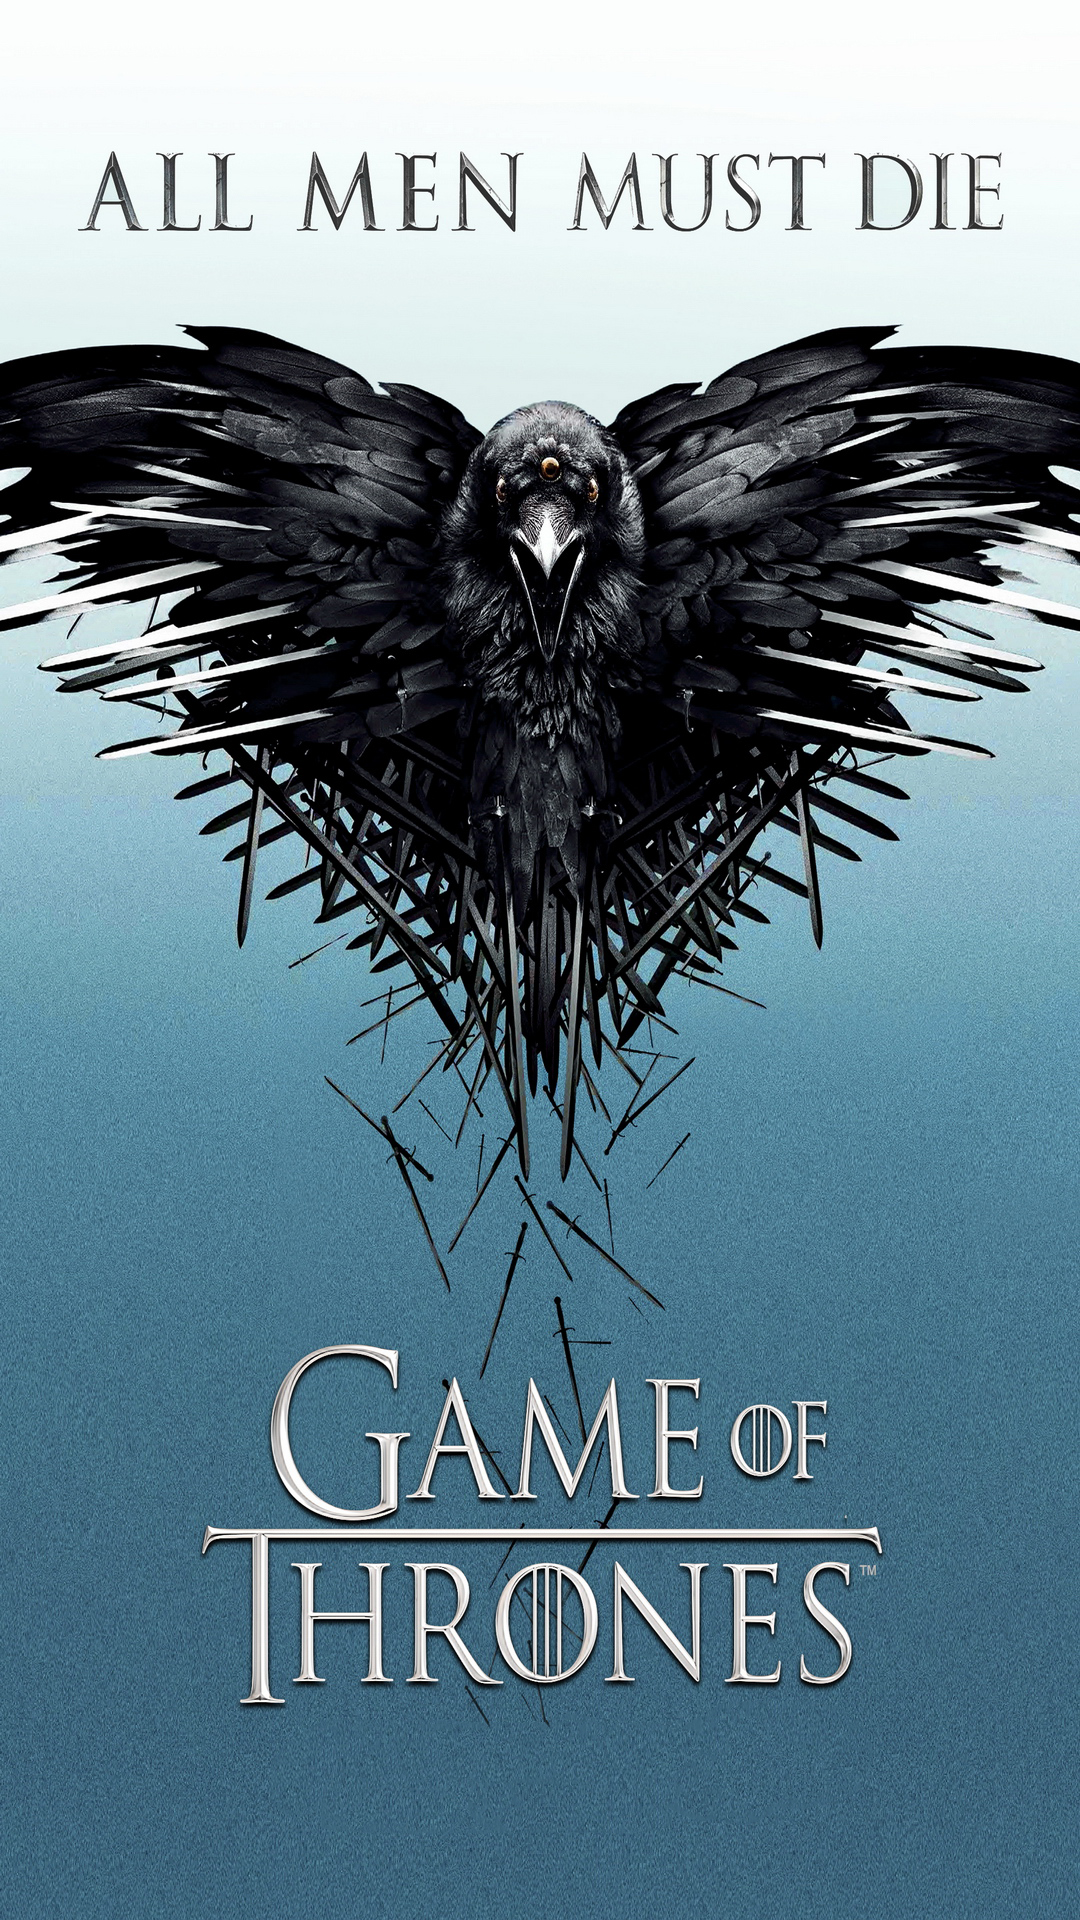 Game Of Thrones All Men Must Die Raven Android Wallpaper download 1080x1920